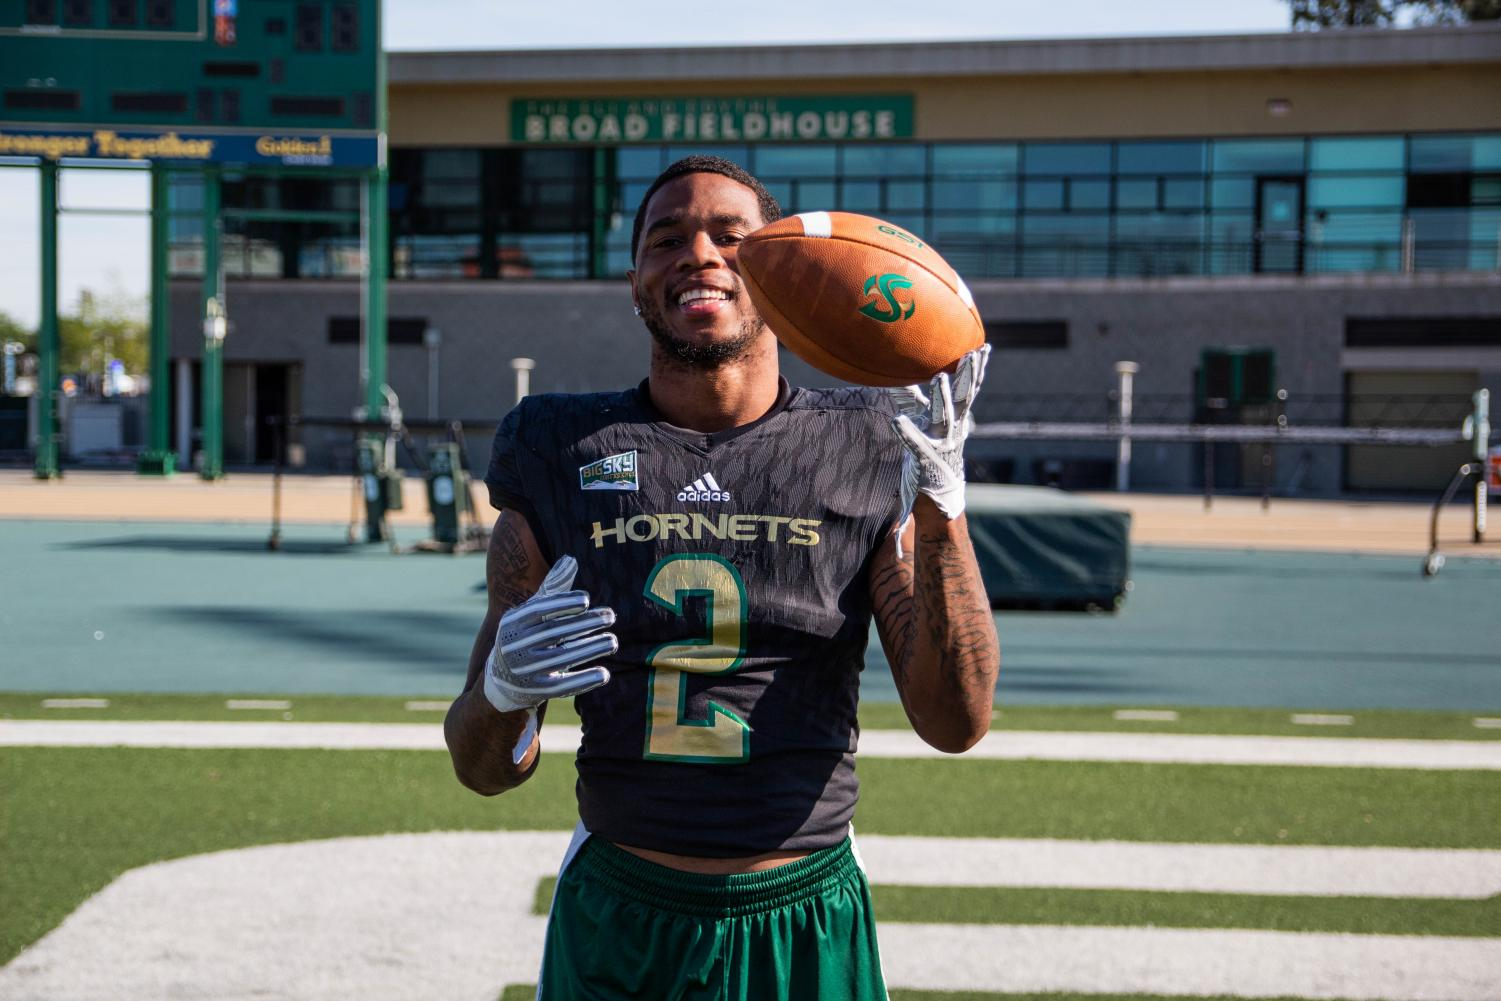 Sac+State+senior+safety+Mister+Harriel+poses+for+a+photo+April+18+at+Hornet+Stadium.+Harriel+is+hopeful+to+be+selected+in+the+2019+NFL+Draft.+